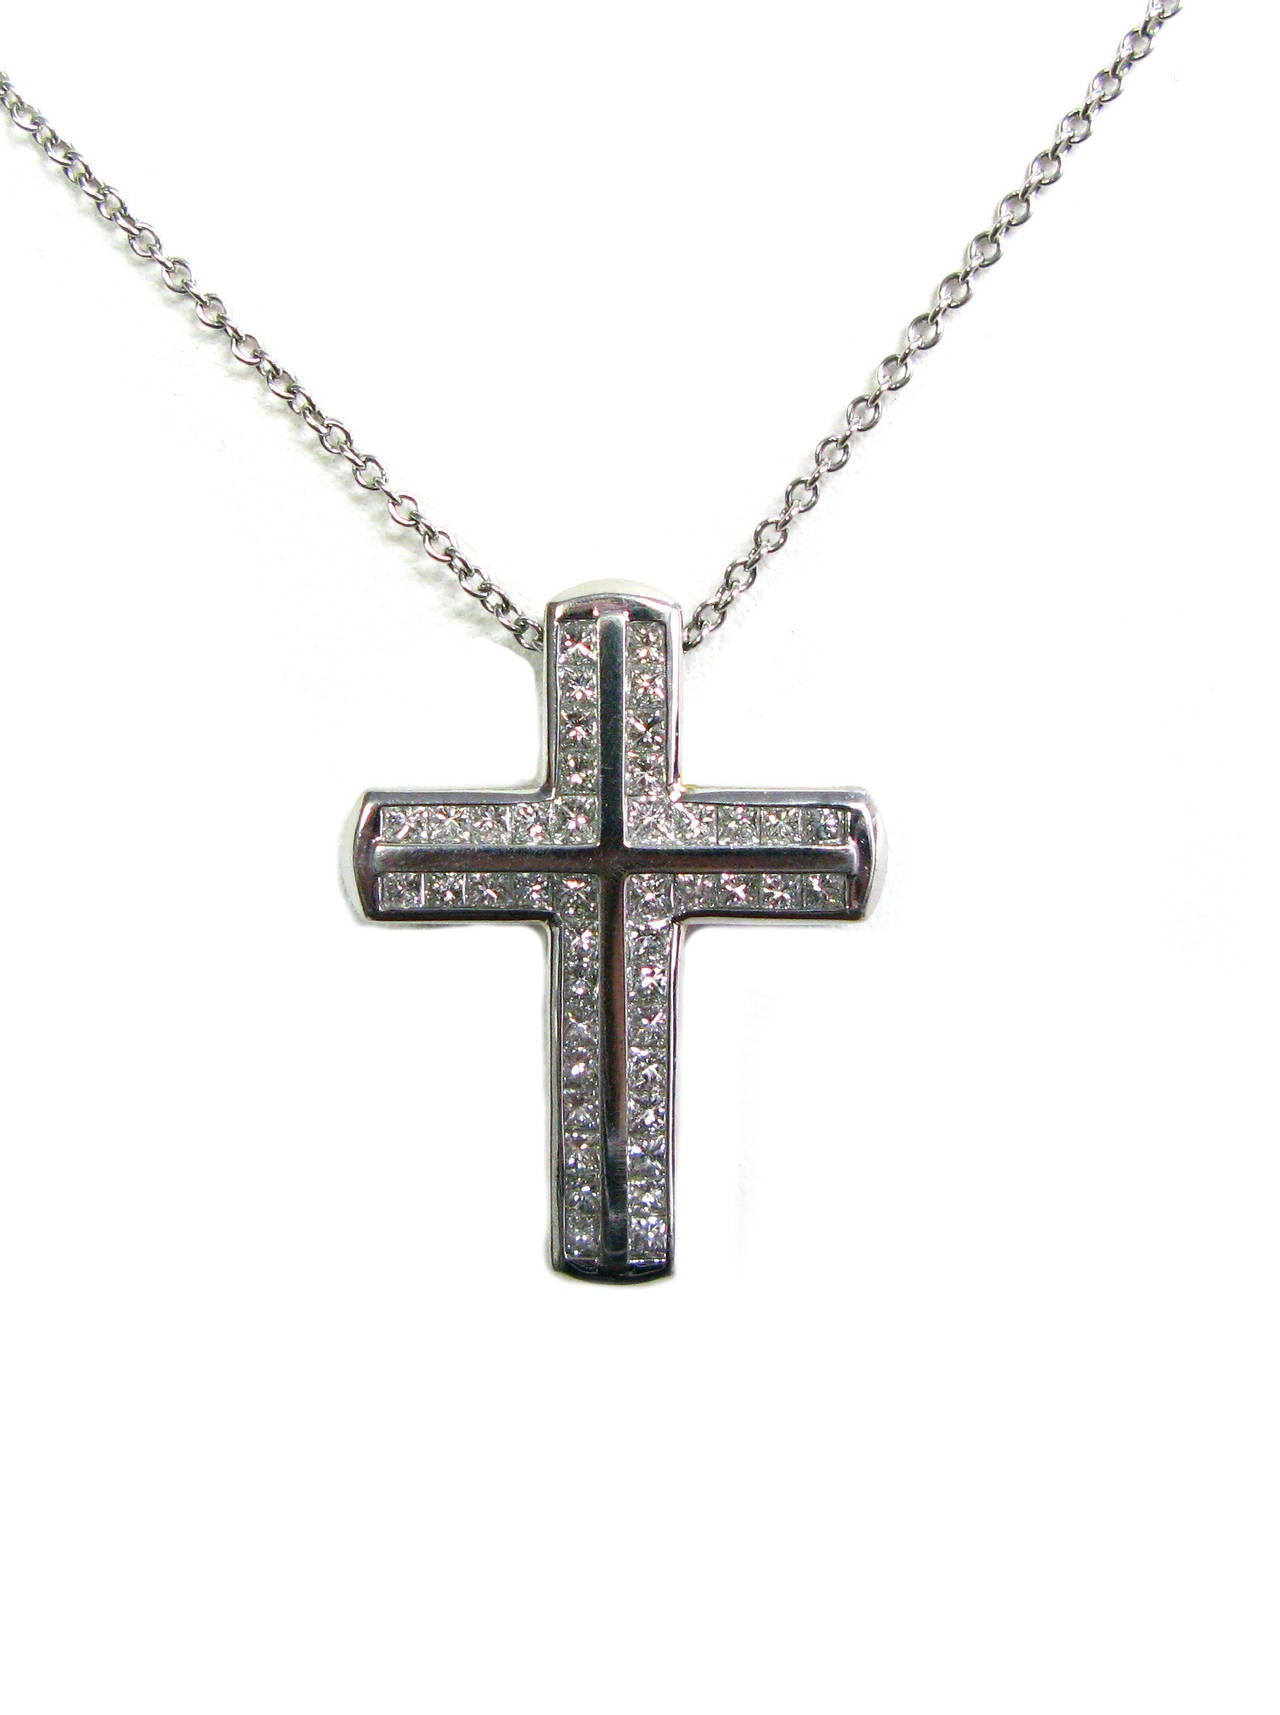 This beautiful necklace is part of the Kurt Wayne collection. This heavyweight platinum cross pendant features rows of channel set princess cut diamonds totaling 1.85cts and is suspended from a 16